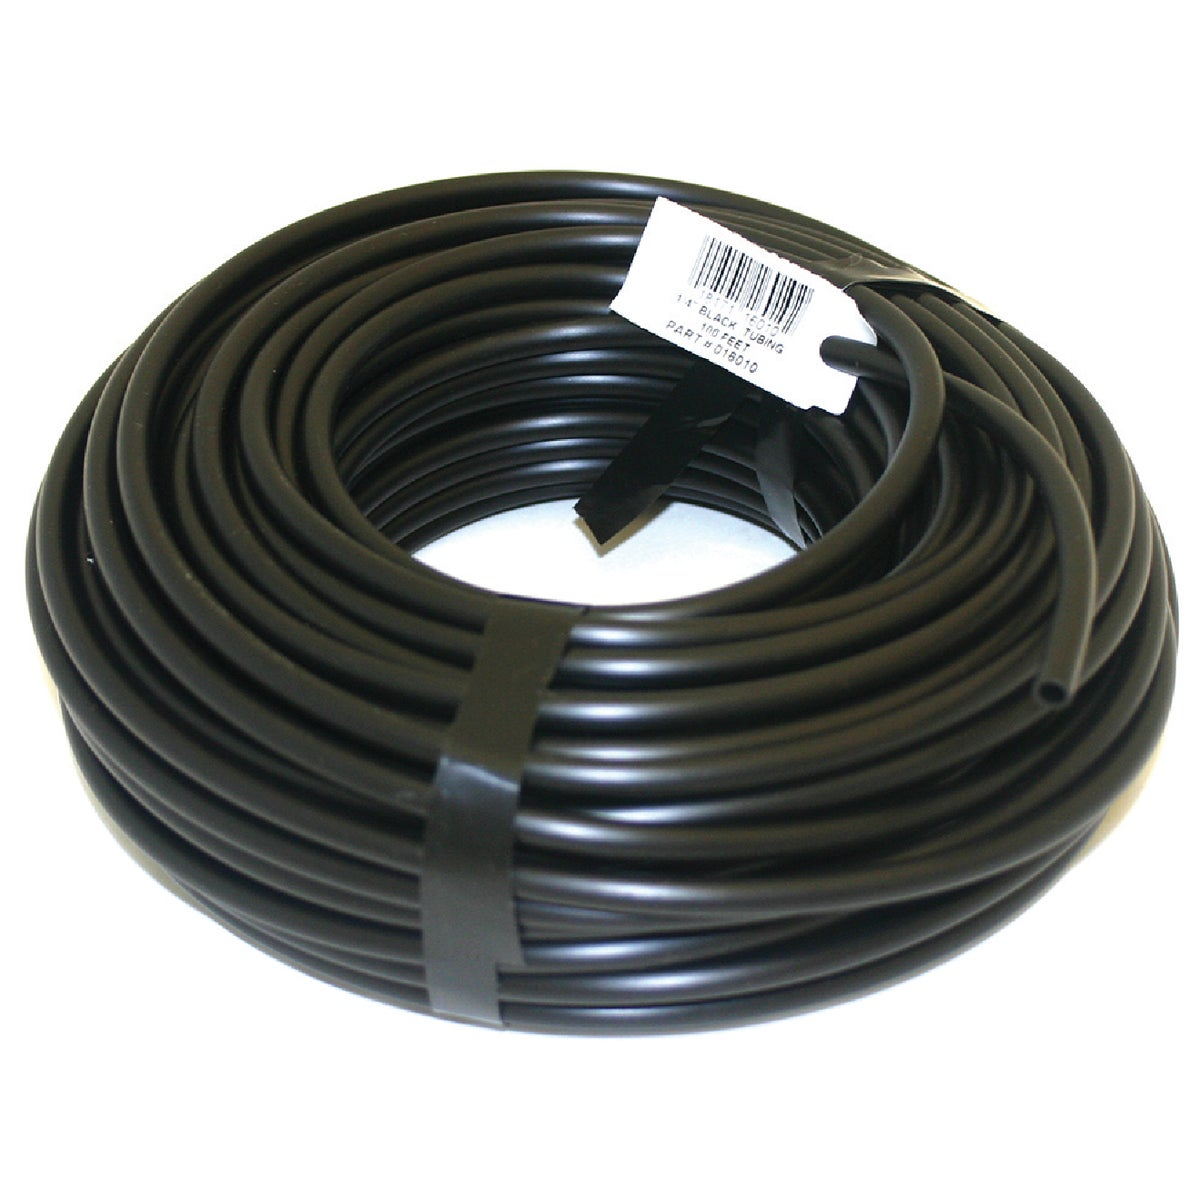 "100' BULK 1/4"" TUBING - 016010T by Raindrip Inc"